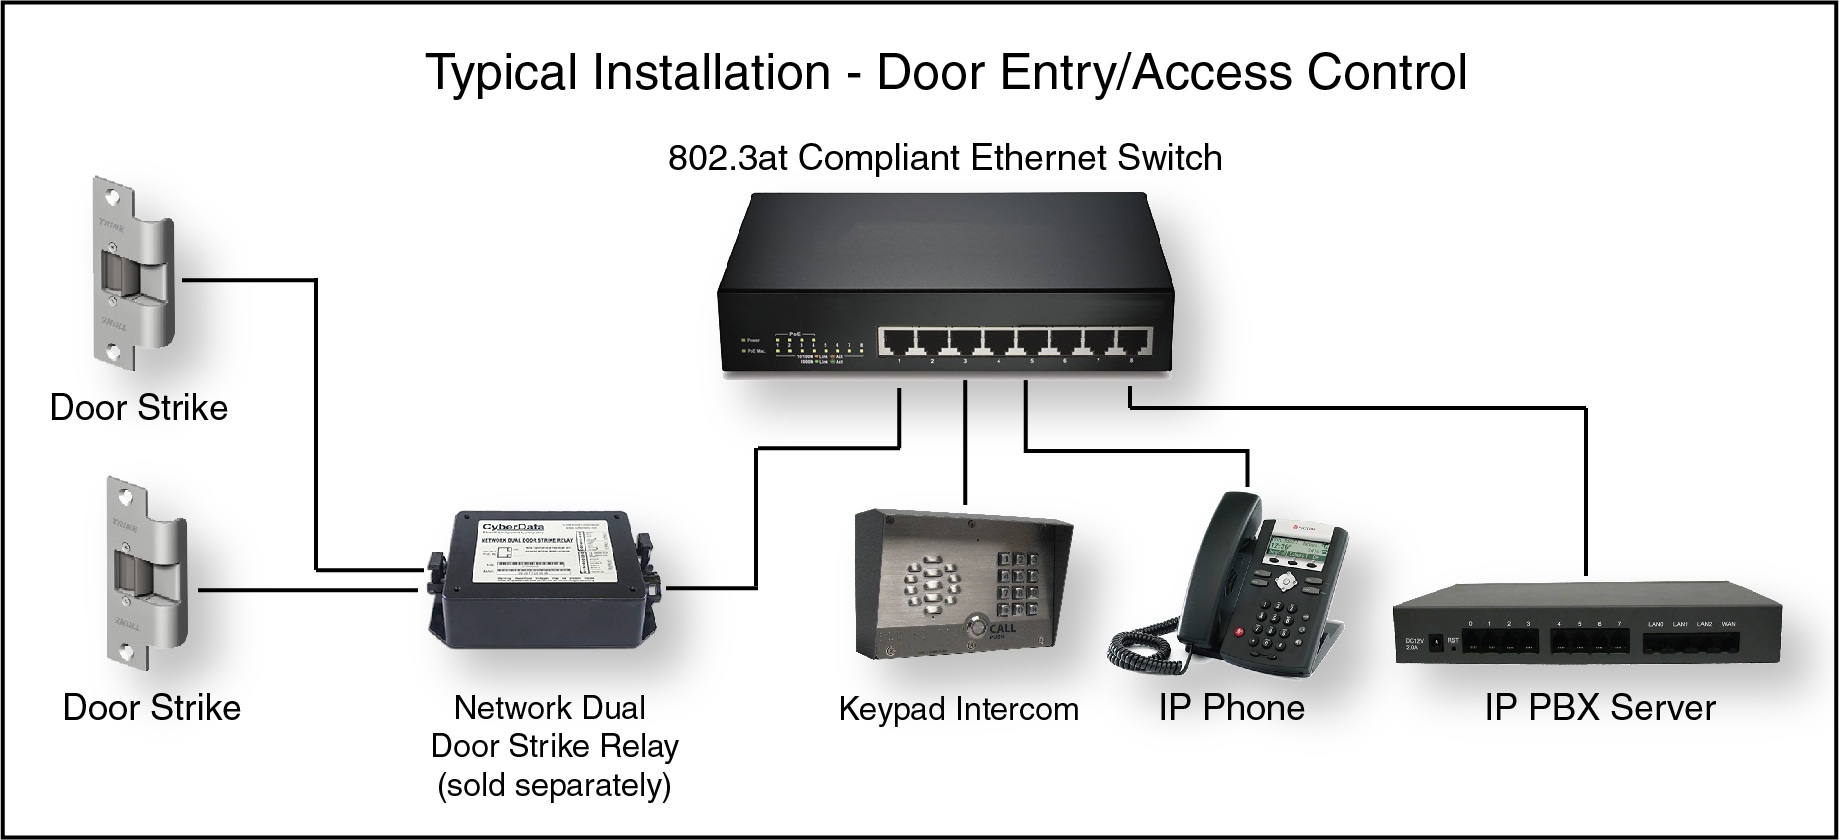 011214 Sip Outdoor Intercom With Keypad Cyberdata Corporation Relay Switch Ethernet Typical Installation Door Entry Access Control